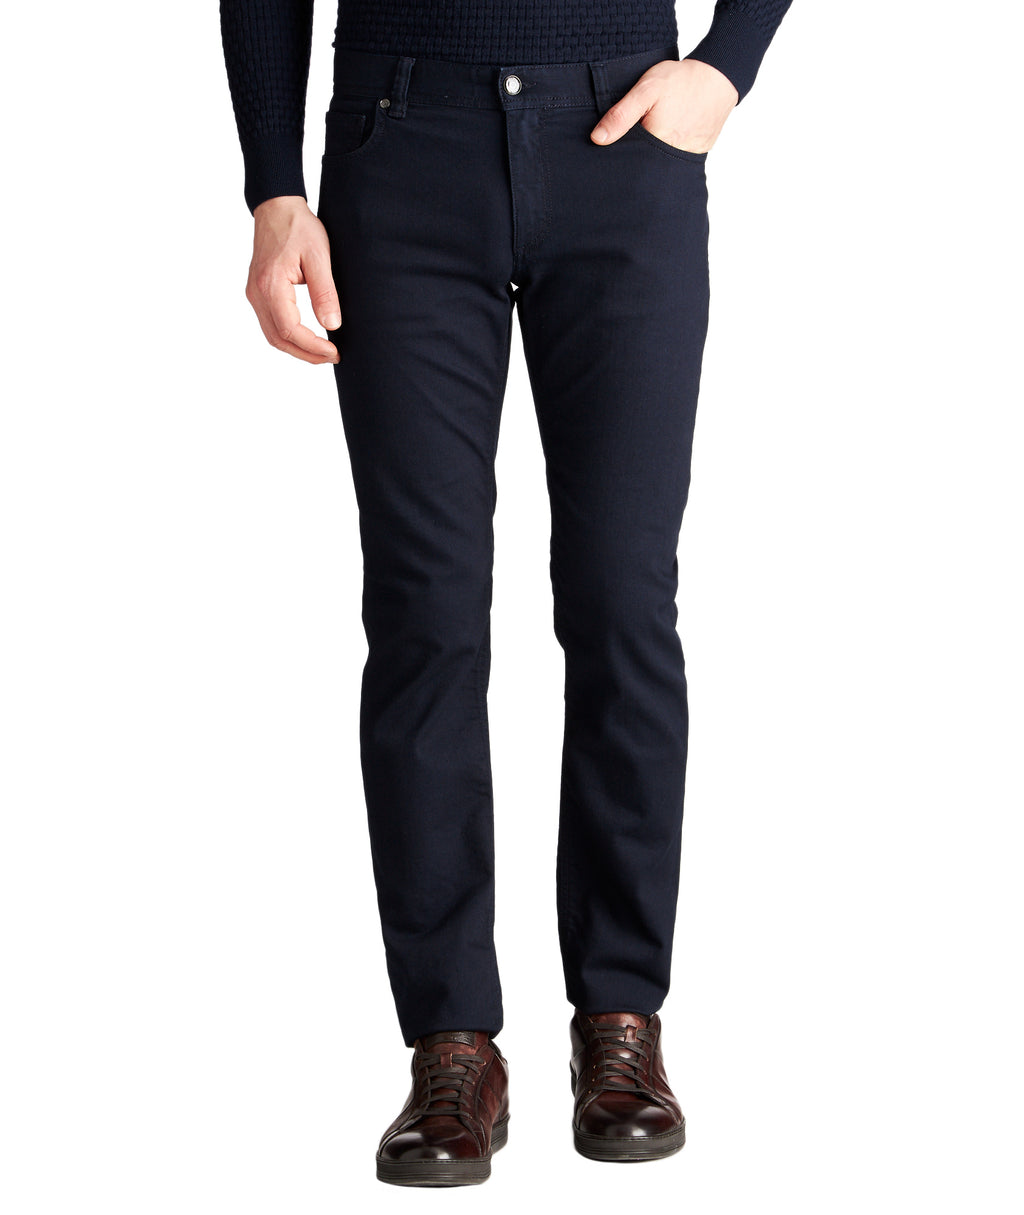 Alberto Jeans - Pipe Slim Fit Blue